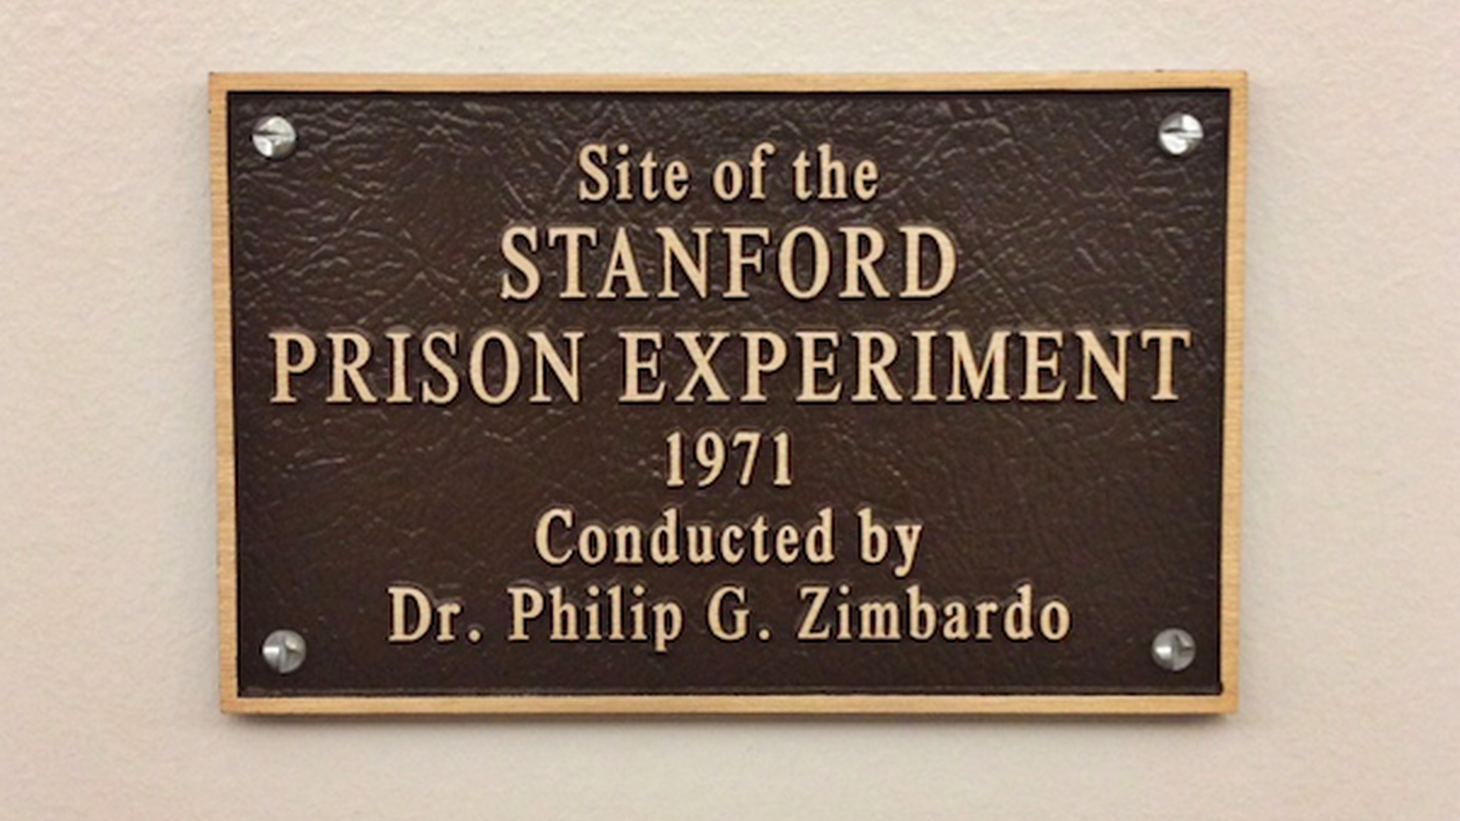 The famous Stanford prison experiment showed that regular people act sadistically when put in the right environment. But now there's new evidence that the study was based on a lie.